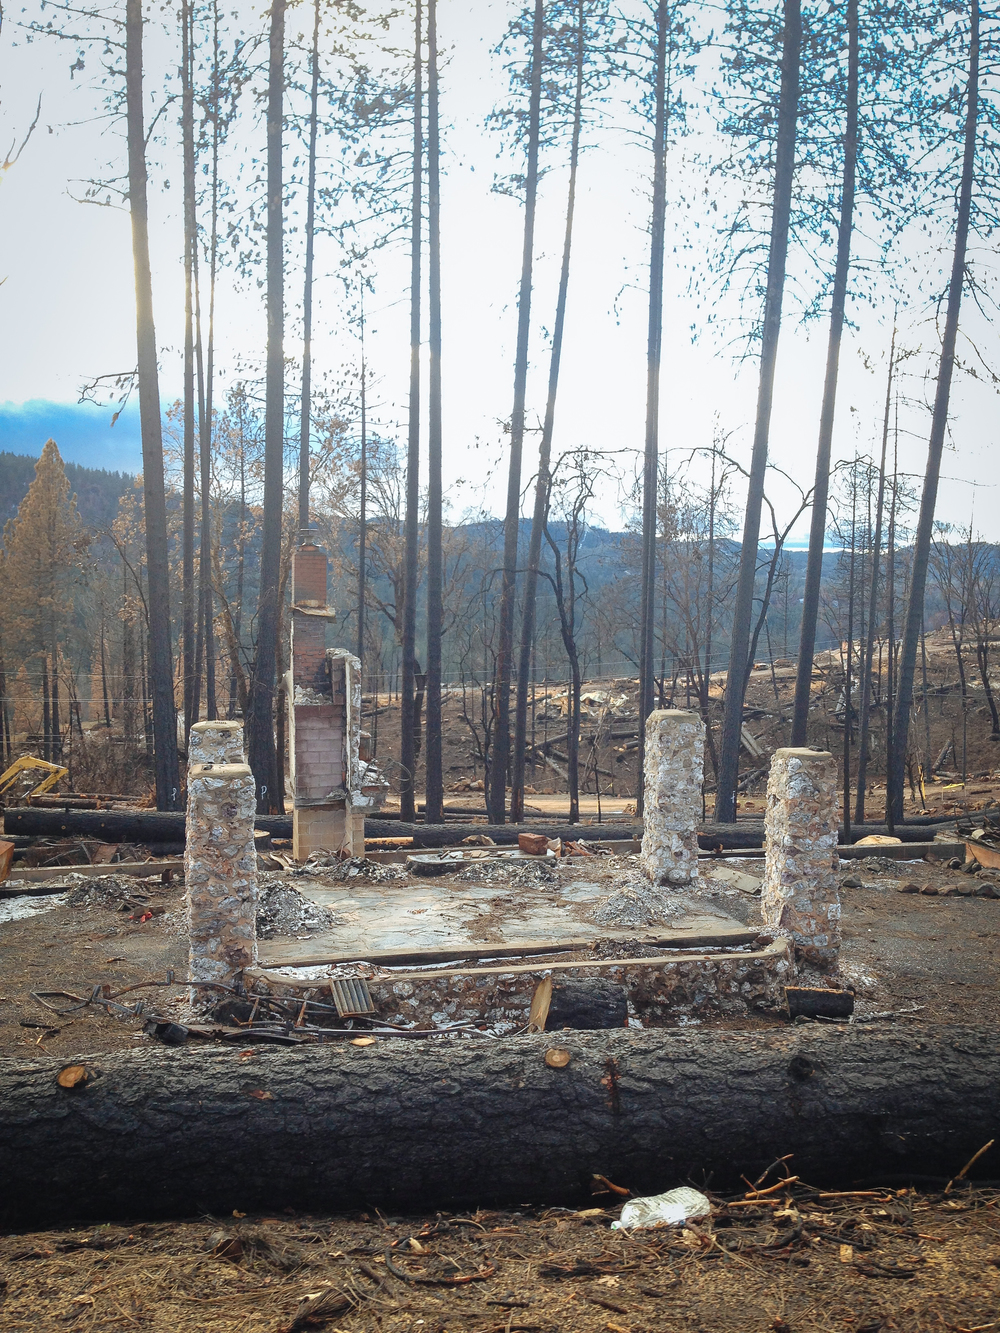 Home on Cobb Mountain destroyed in The Valley Fire - four months after the fire